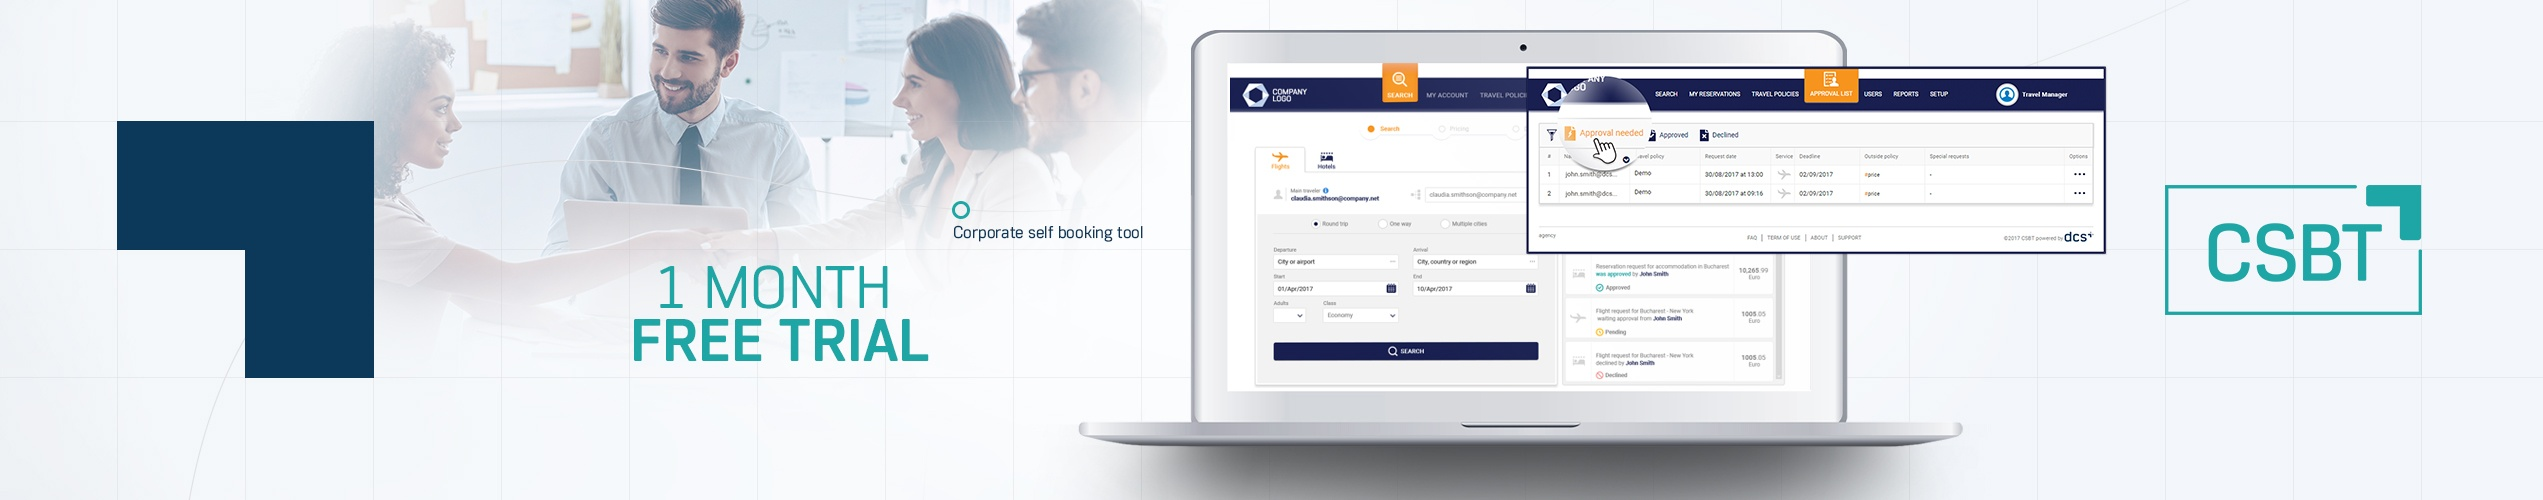 CSBT - Corporate Self Booking Tool